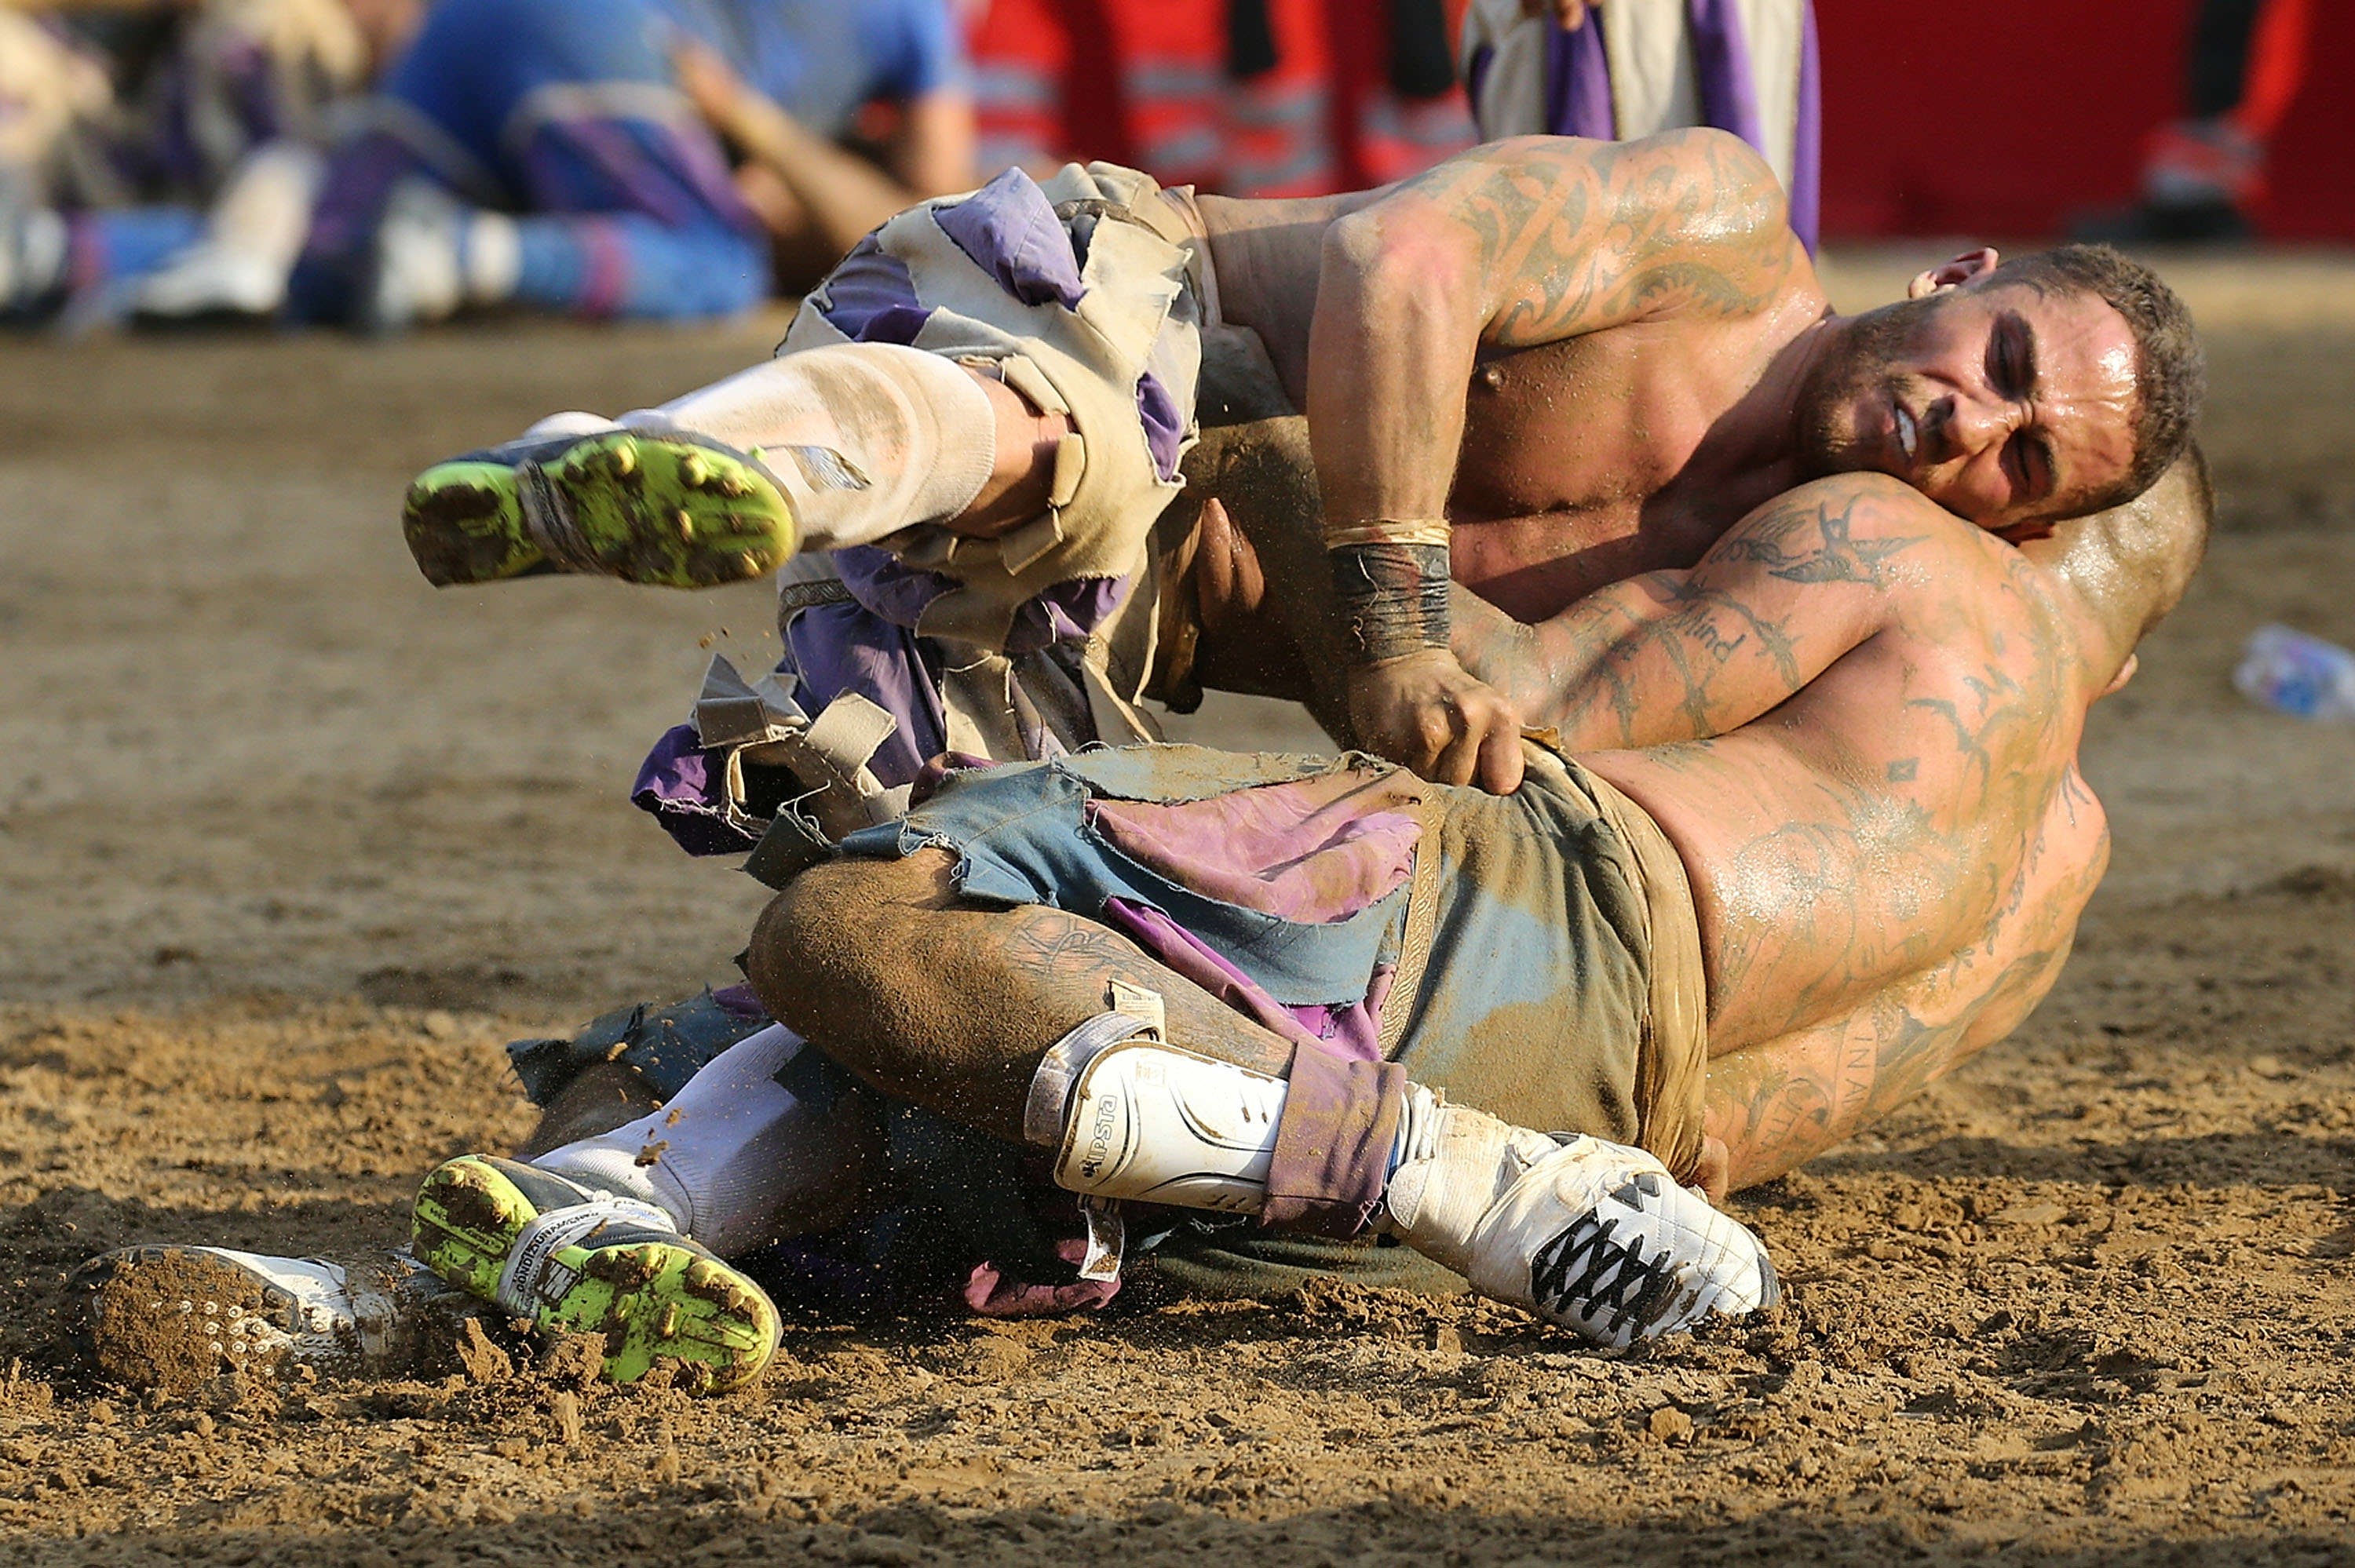 calcio5 This Version Of Football Could Be The Worlds Most Brutal Sport